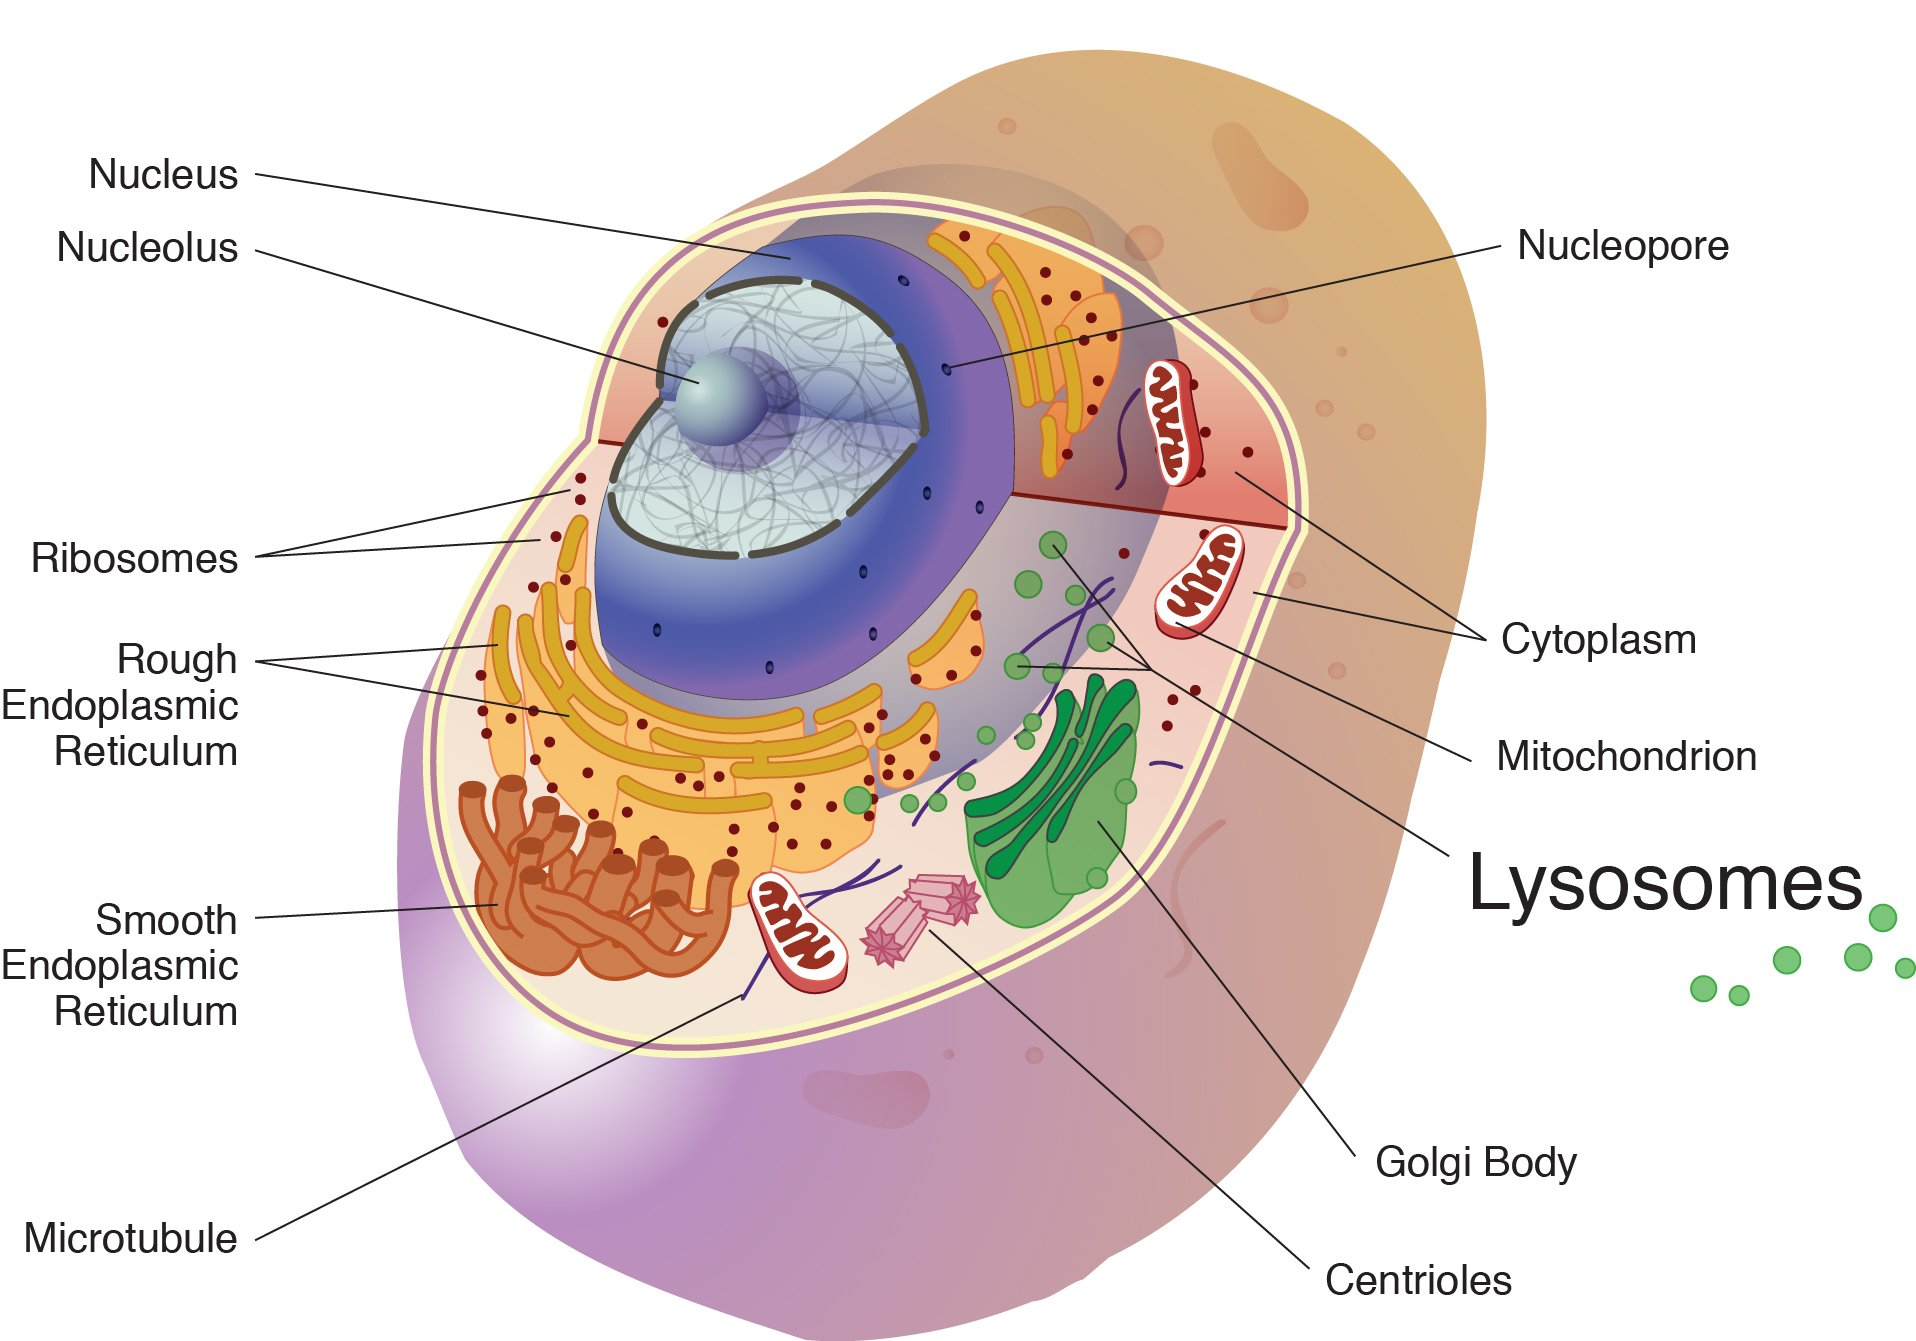 Lysosome National Library Of Medicine Pubmed Health